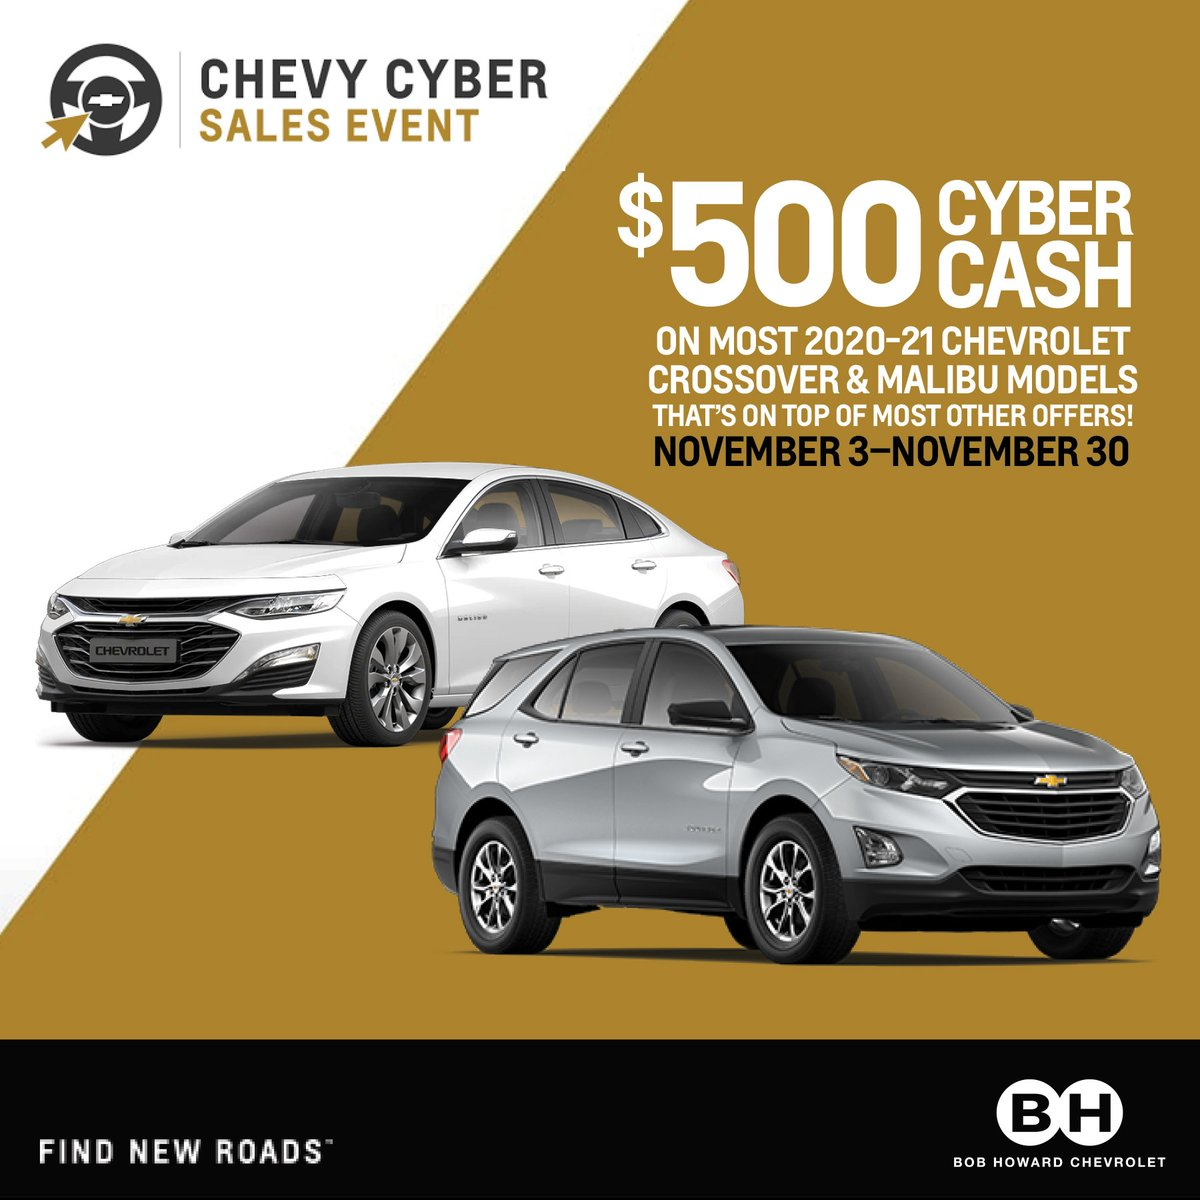 Bob Howard Chevrolet On Twitter The Chevy Cyber Sales Event Is Here Get 500 In Cyber Cash On Most 2020 2021 Models Shop Now Https T Co V5iqgckbtu Https T Co M8il2faf73